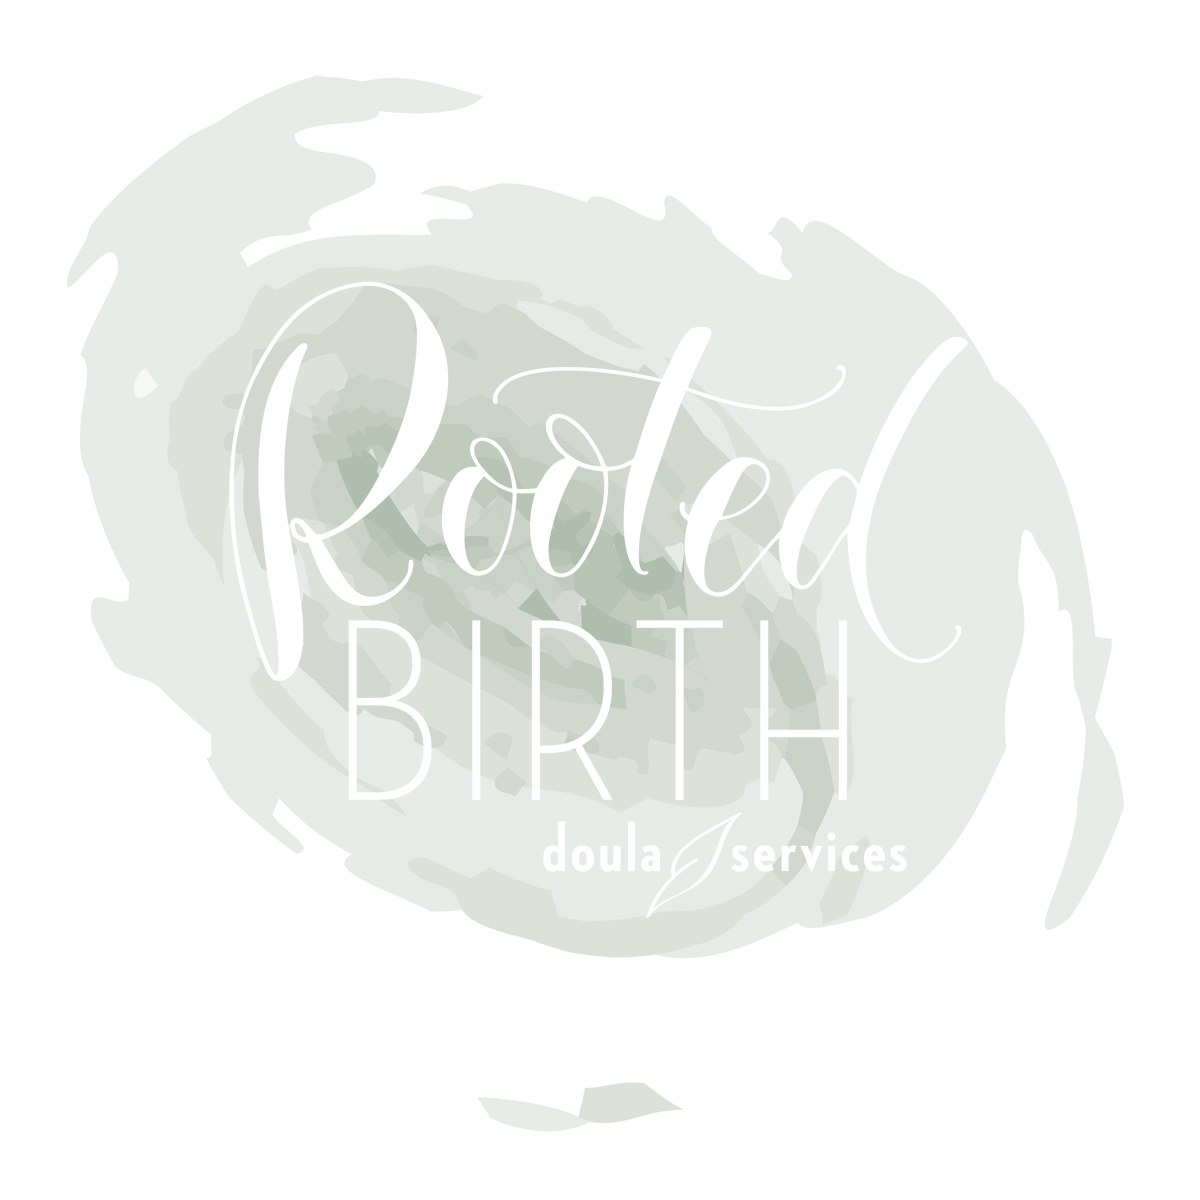 Rooted Birth Doula Services